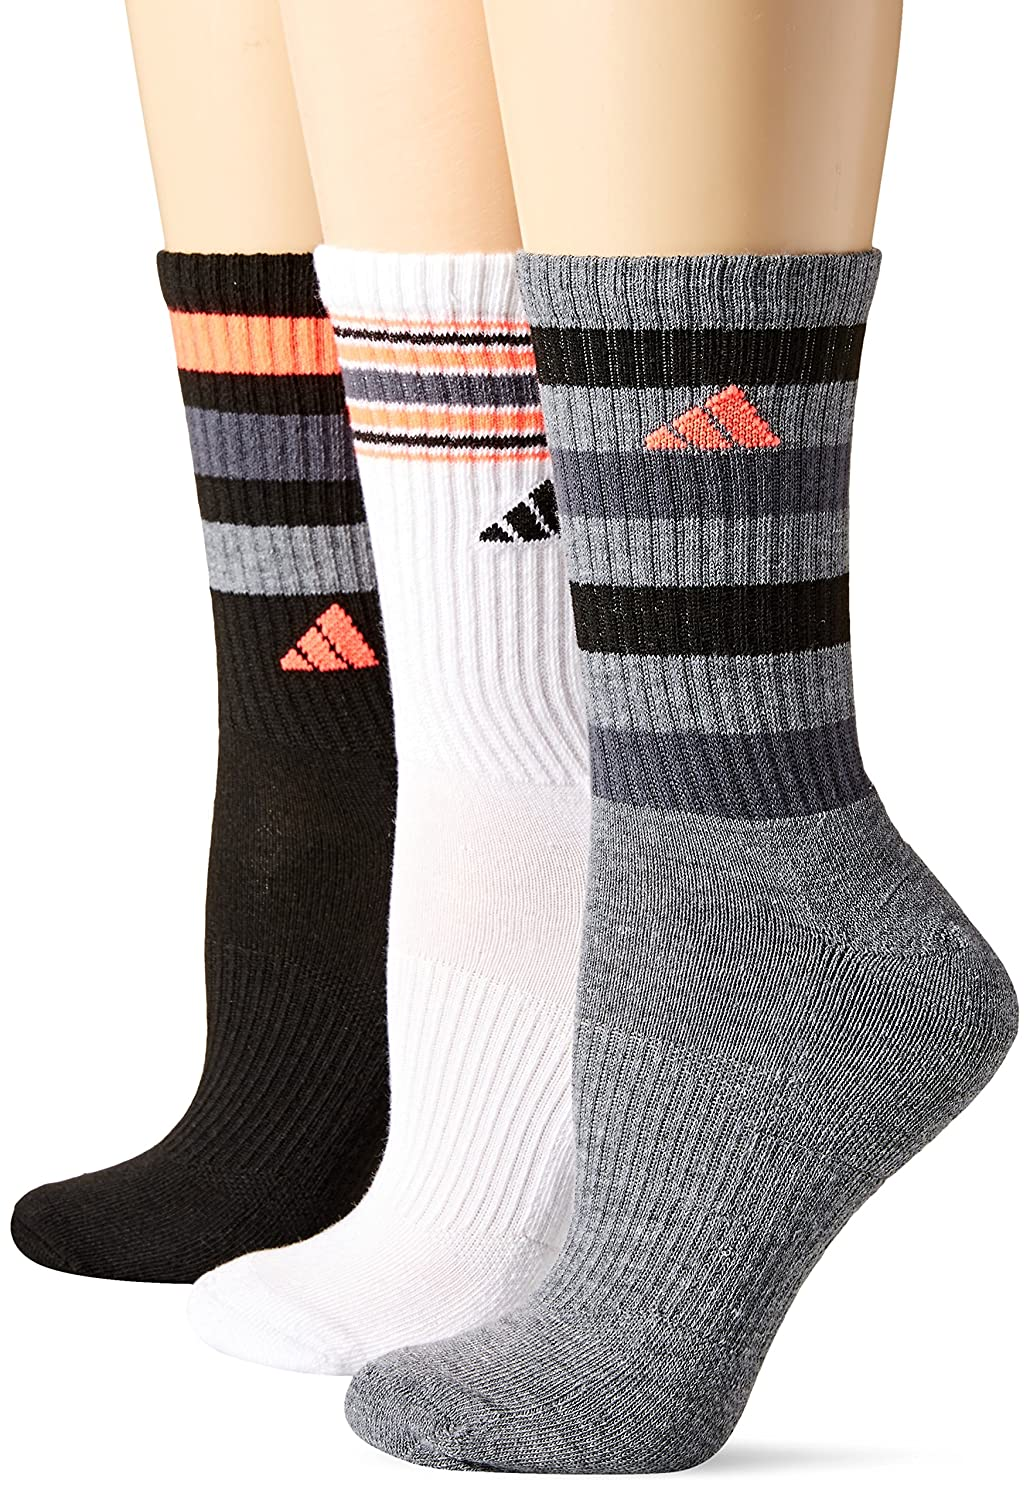 adidas Women's Retro II Crew Socks (Pack of 3), M 104686